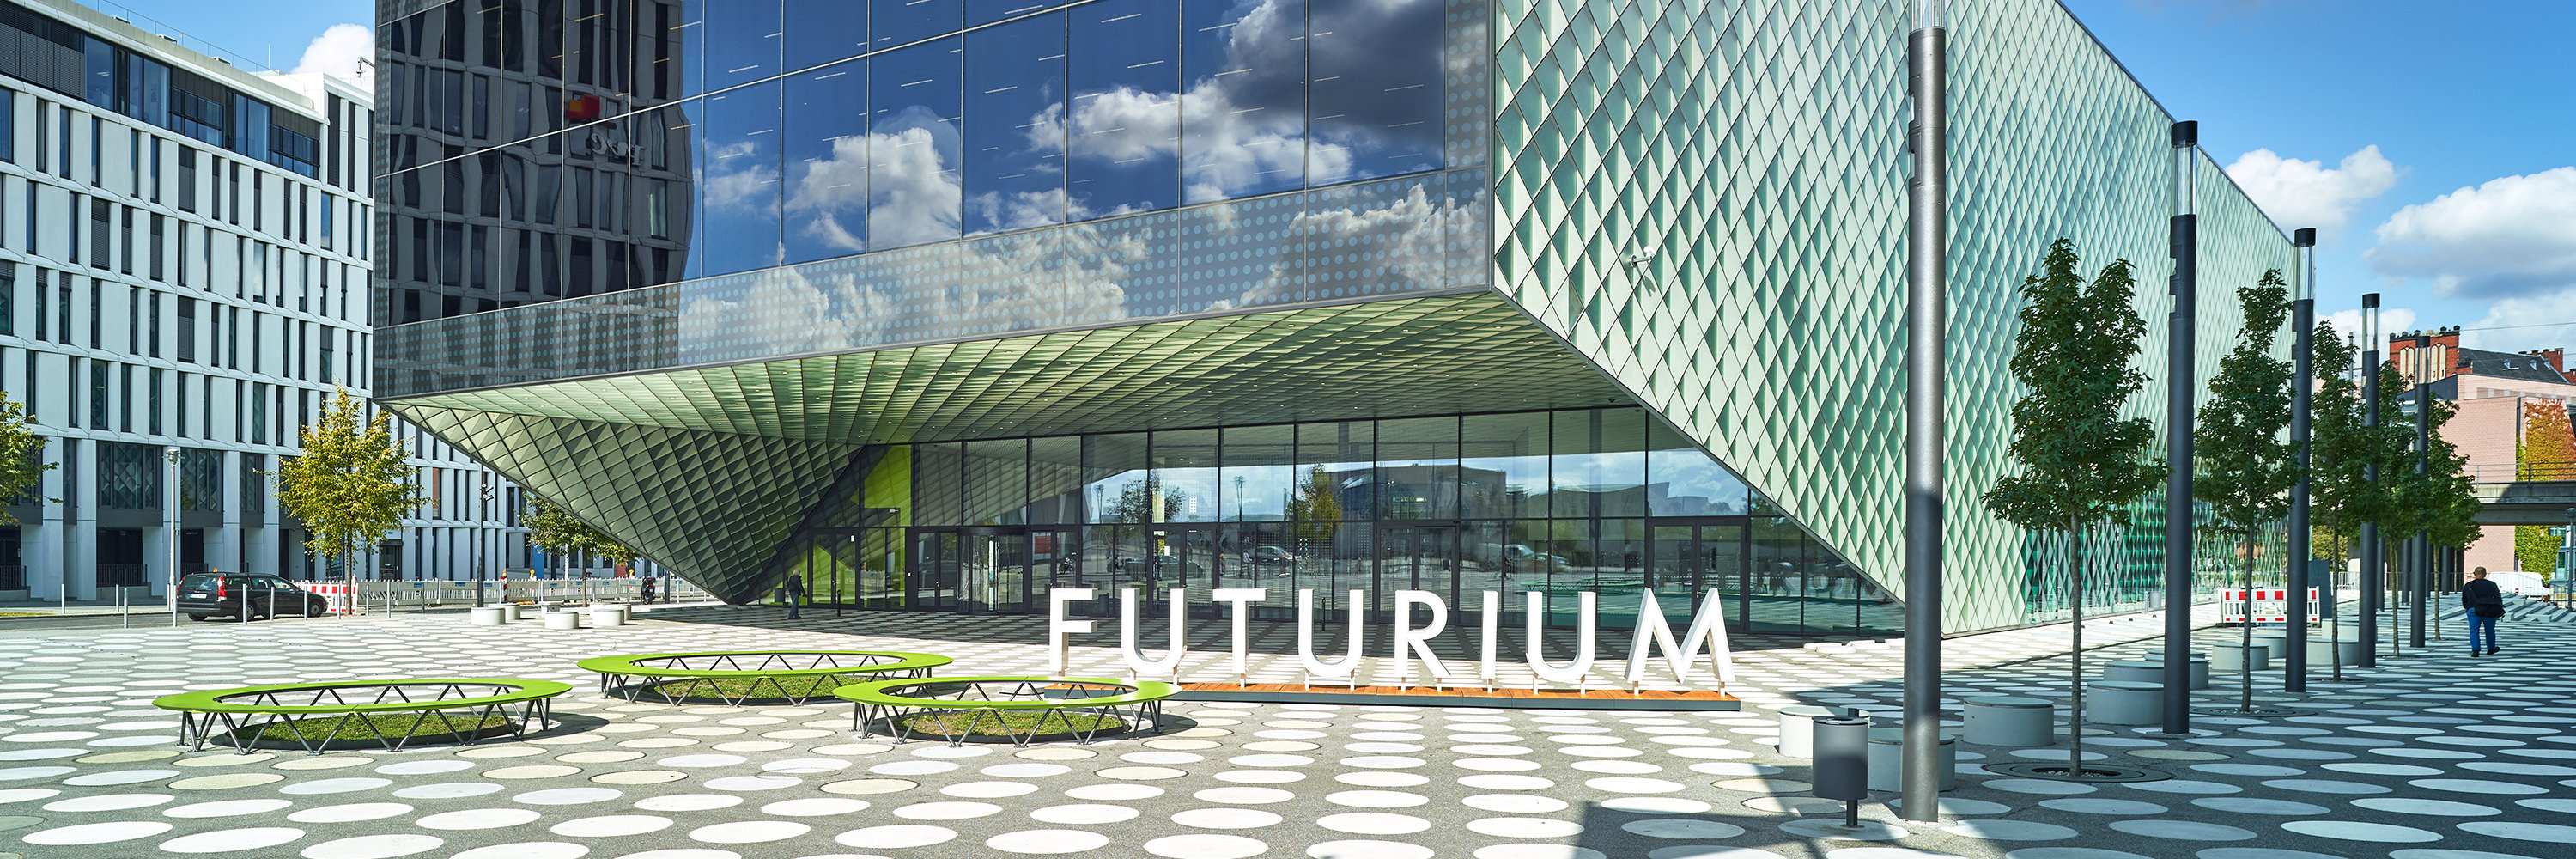 Futurium Berlin Mediencenter Jansen Building Systems